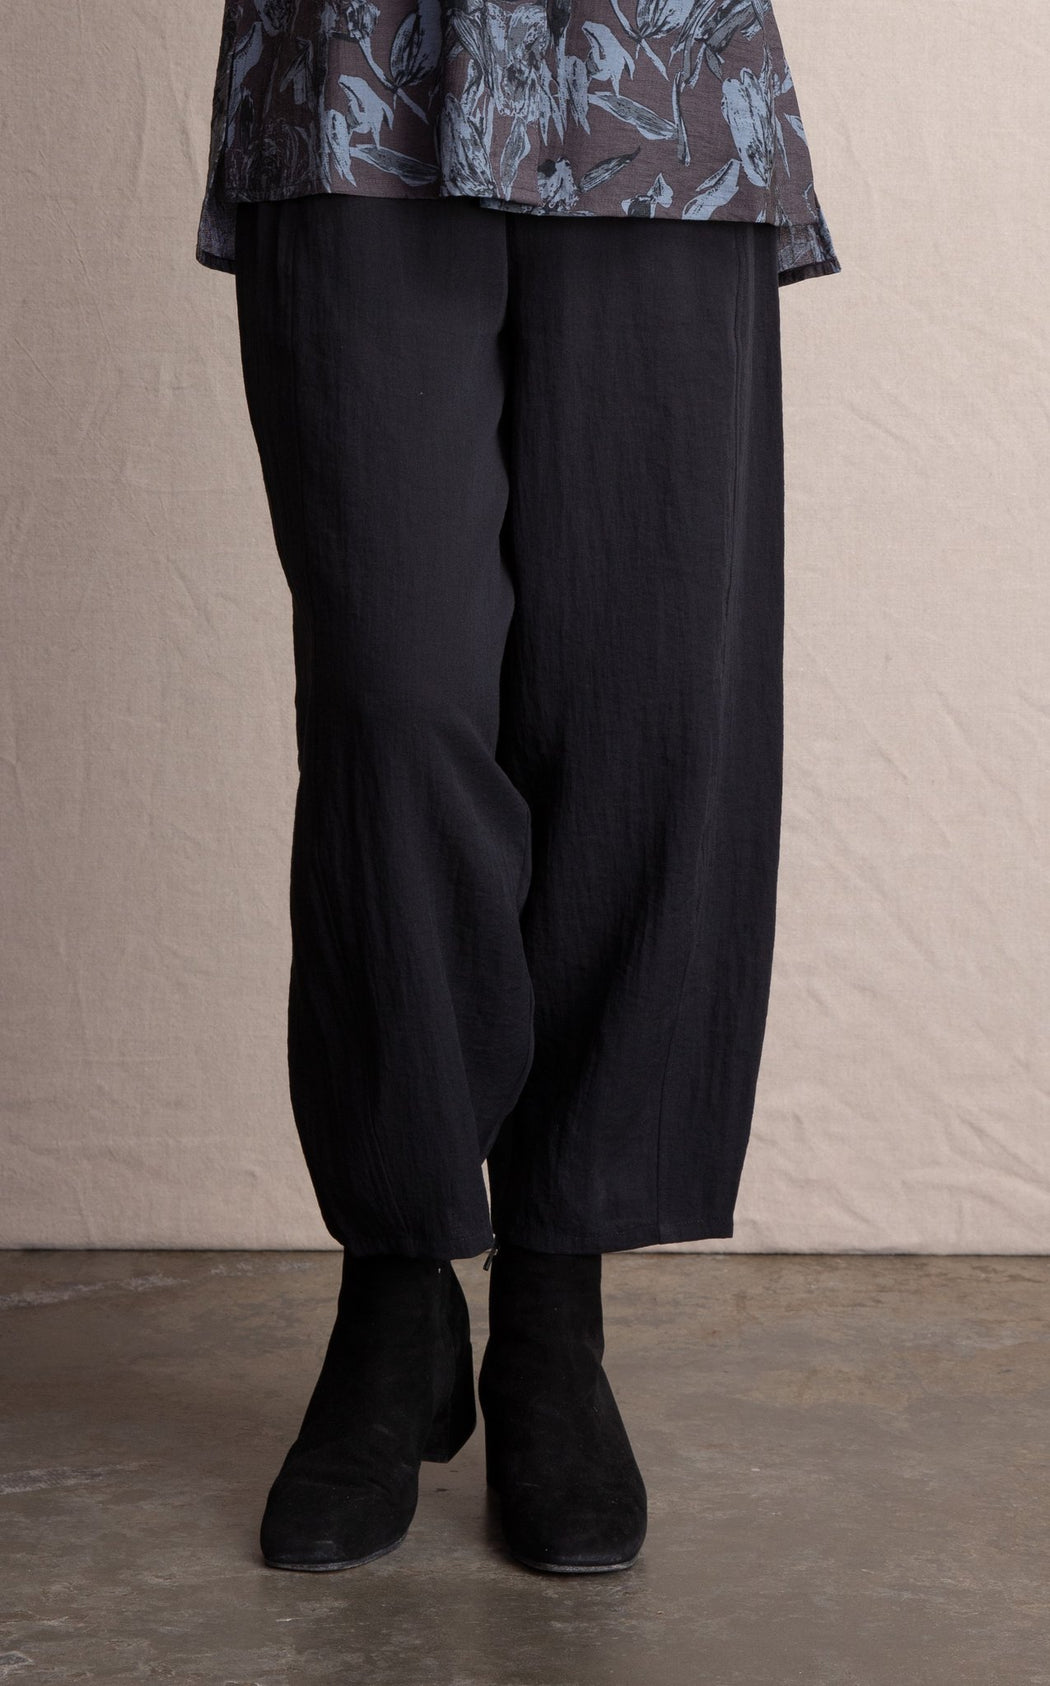 Habitat Lantern Pant All Elastic Waist Front Pockets 25 3/4 Inseam Rayon/Nylon Fabric Great for Travel